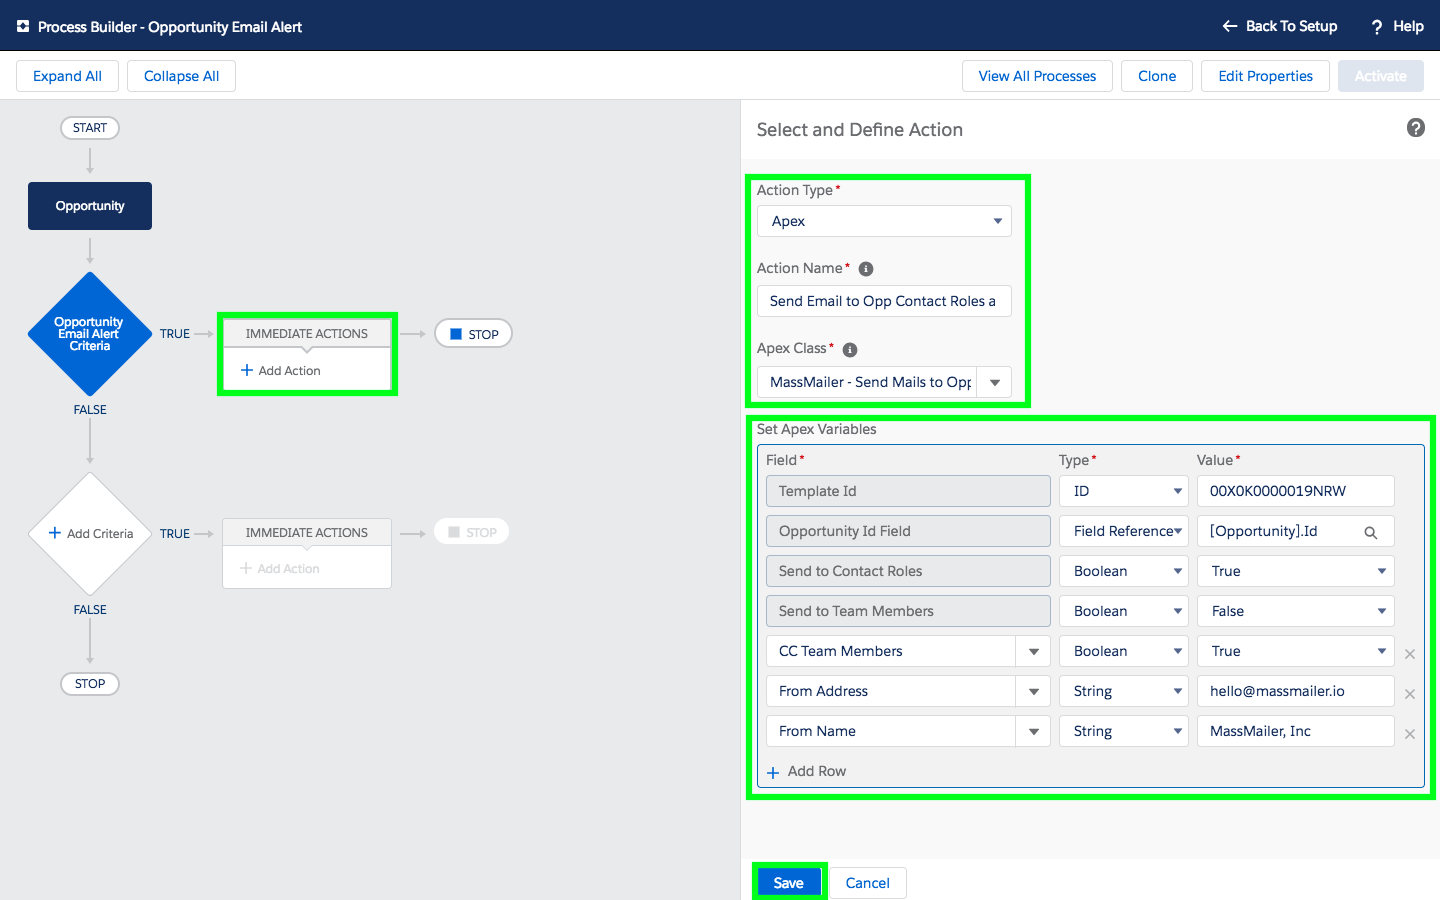 Send Email Alerts To Salesforce Opportunity Contact Roles And Team